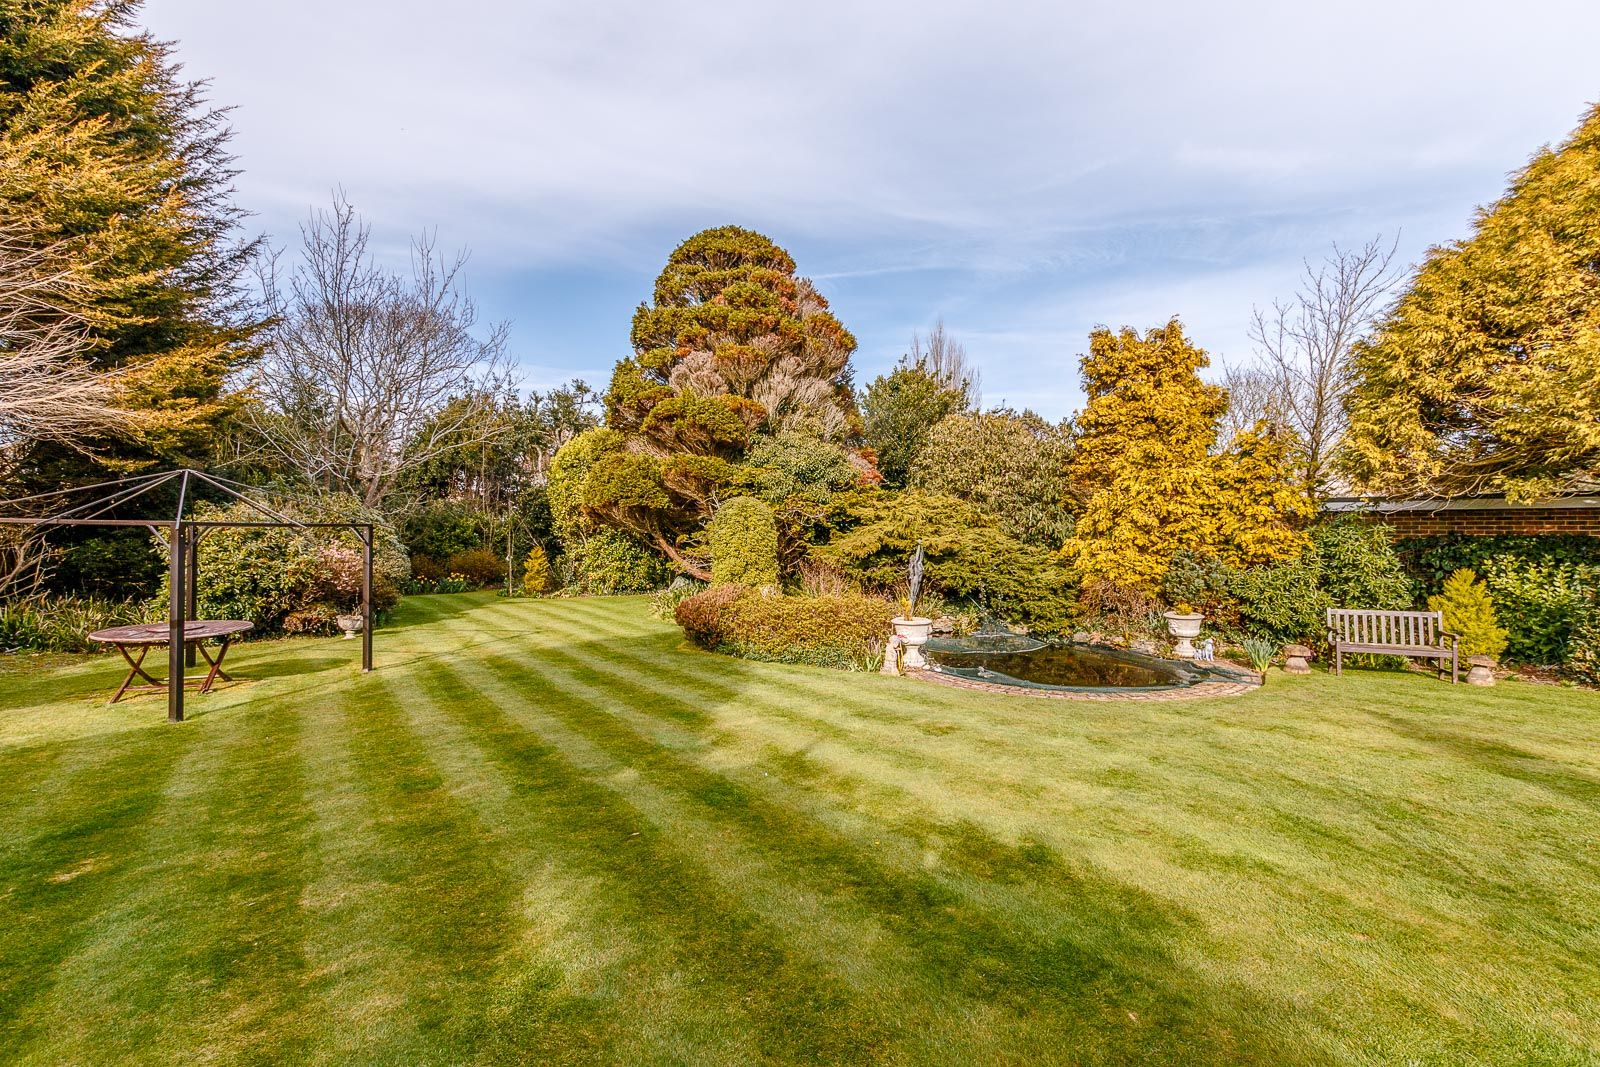 3 bed Bungalow for sale in East Preston - Beautiful rear garden (Property Image 1)